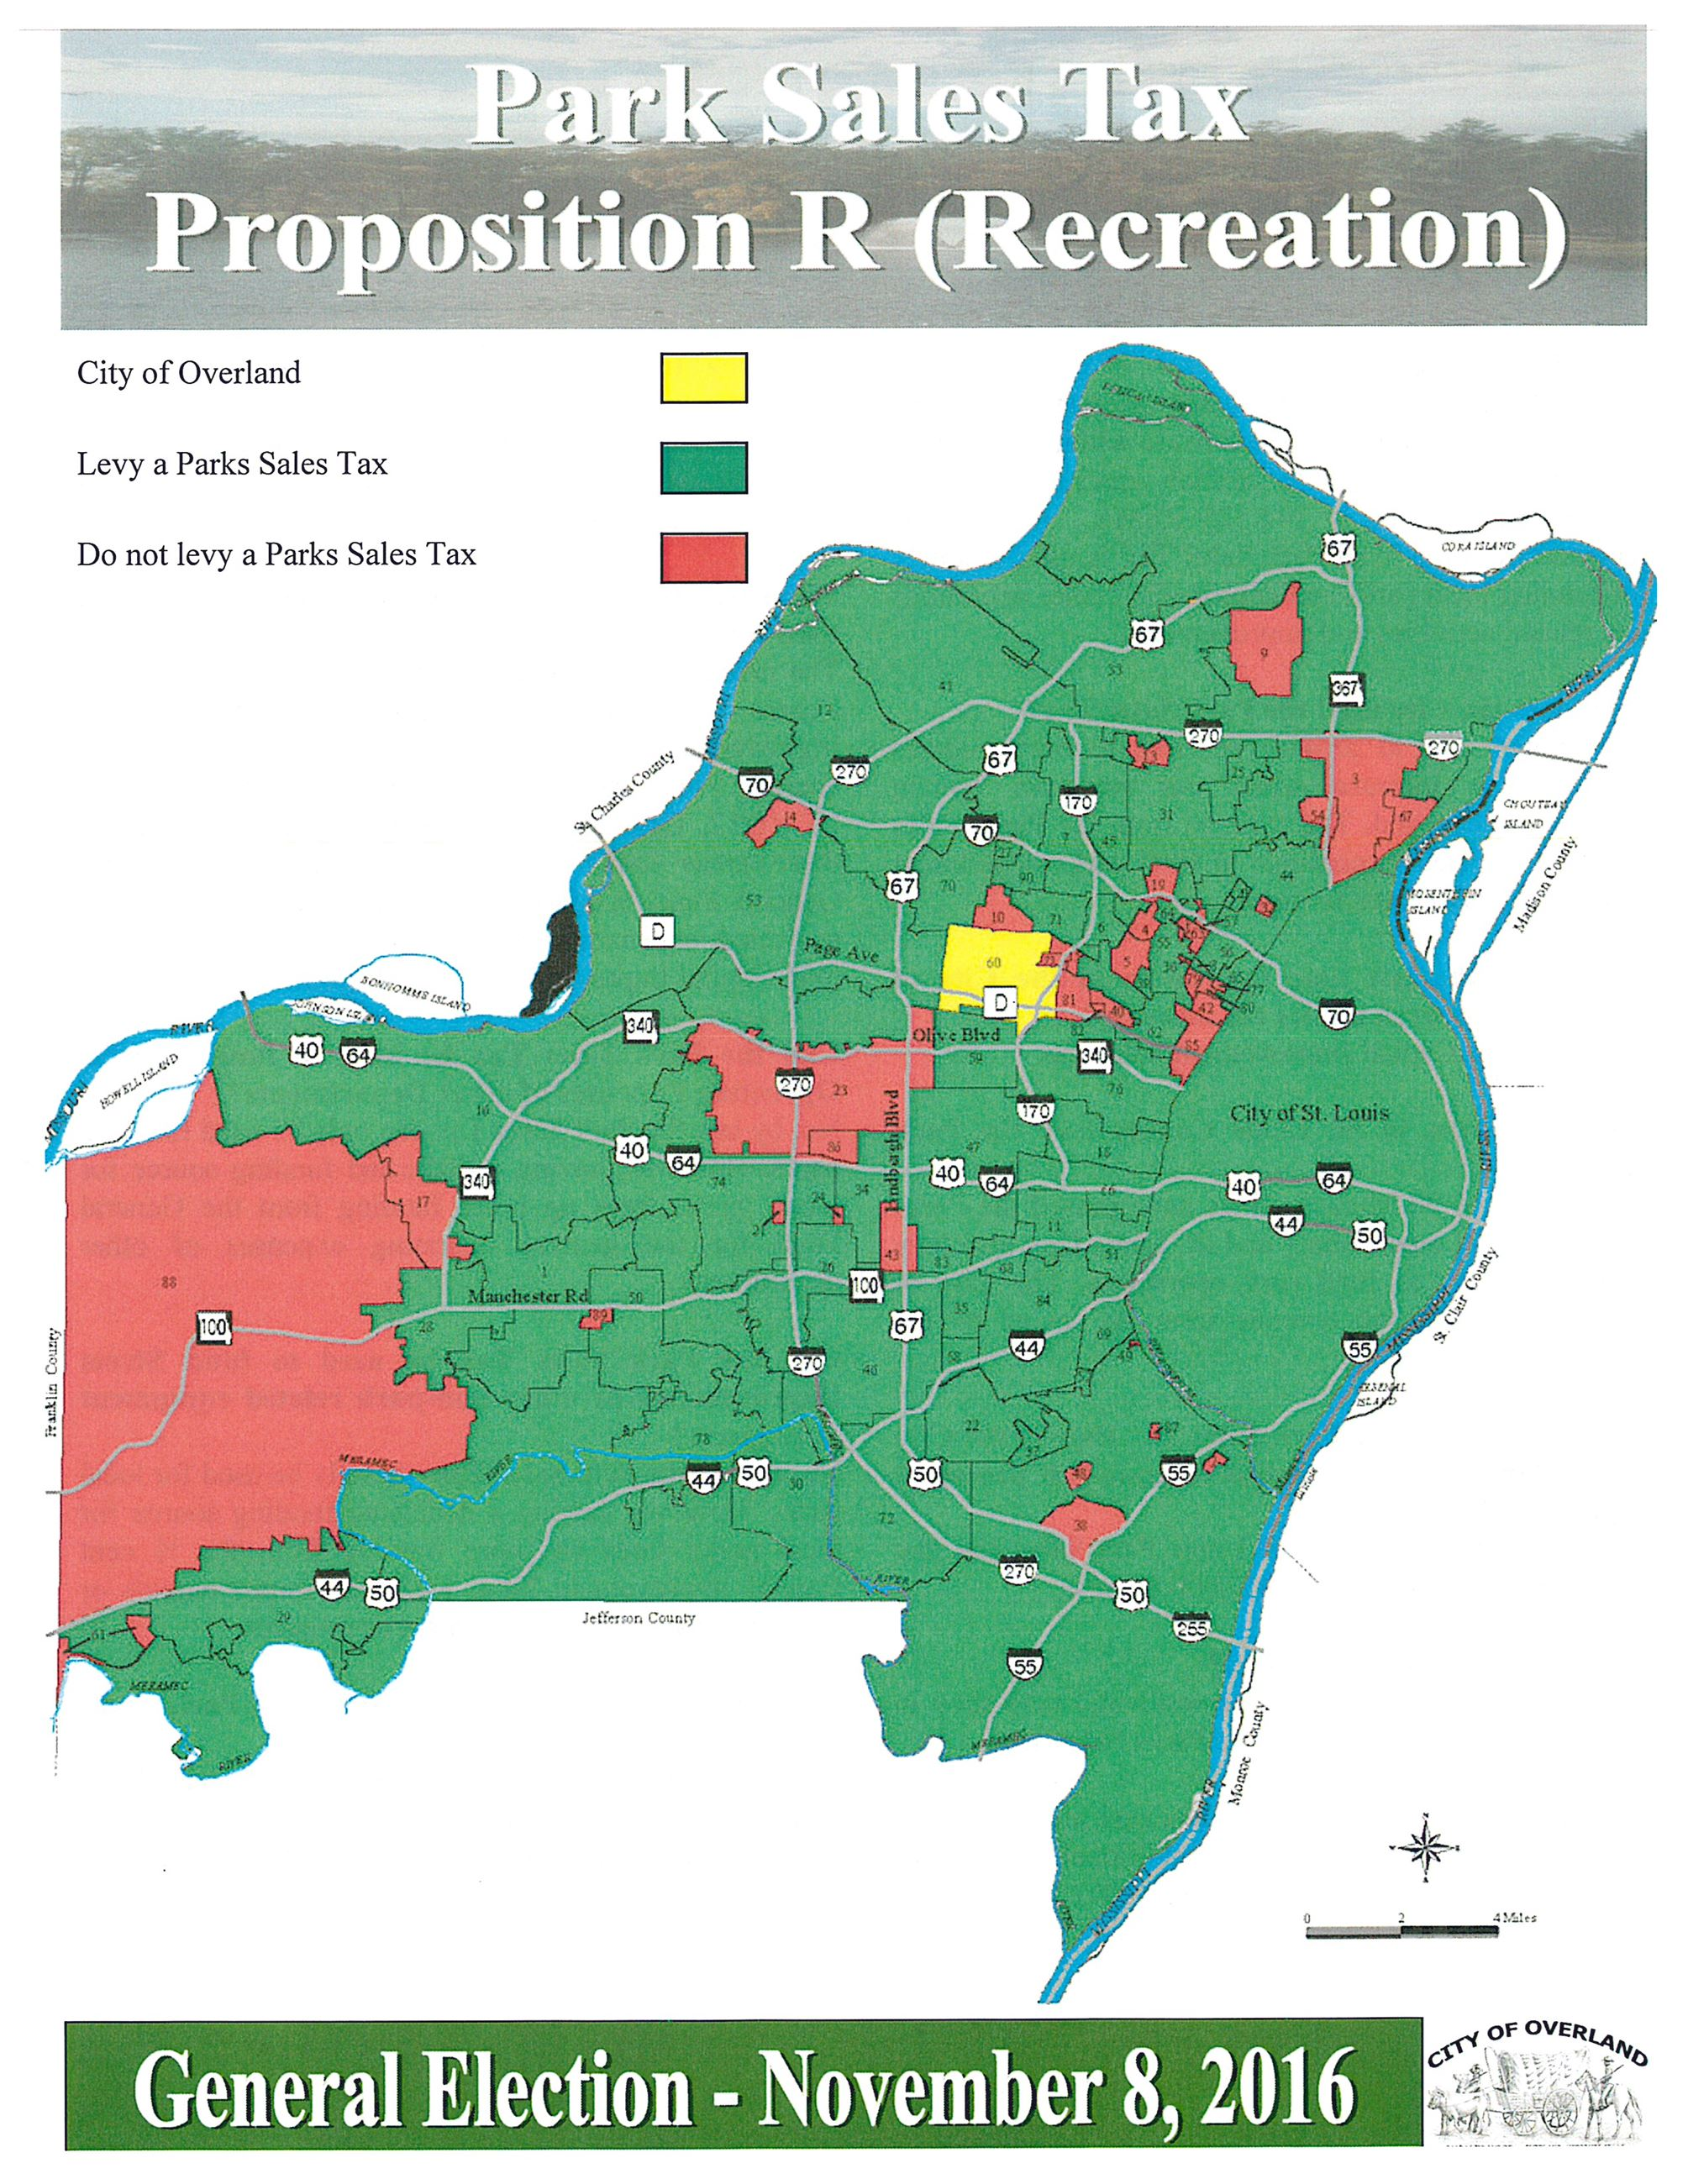 Park Sales Tax Flyer - Map